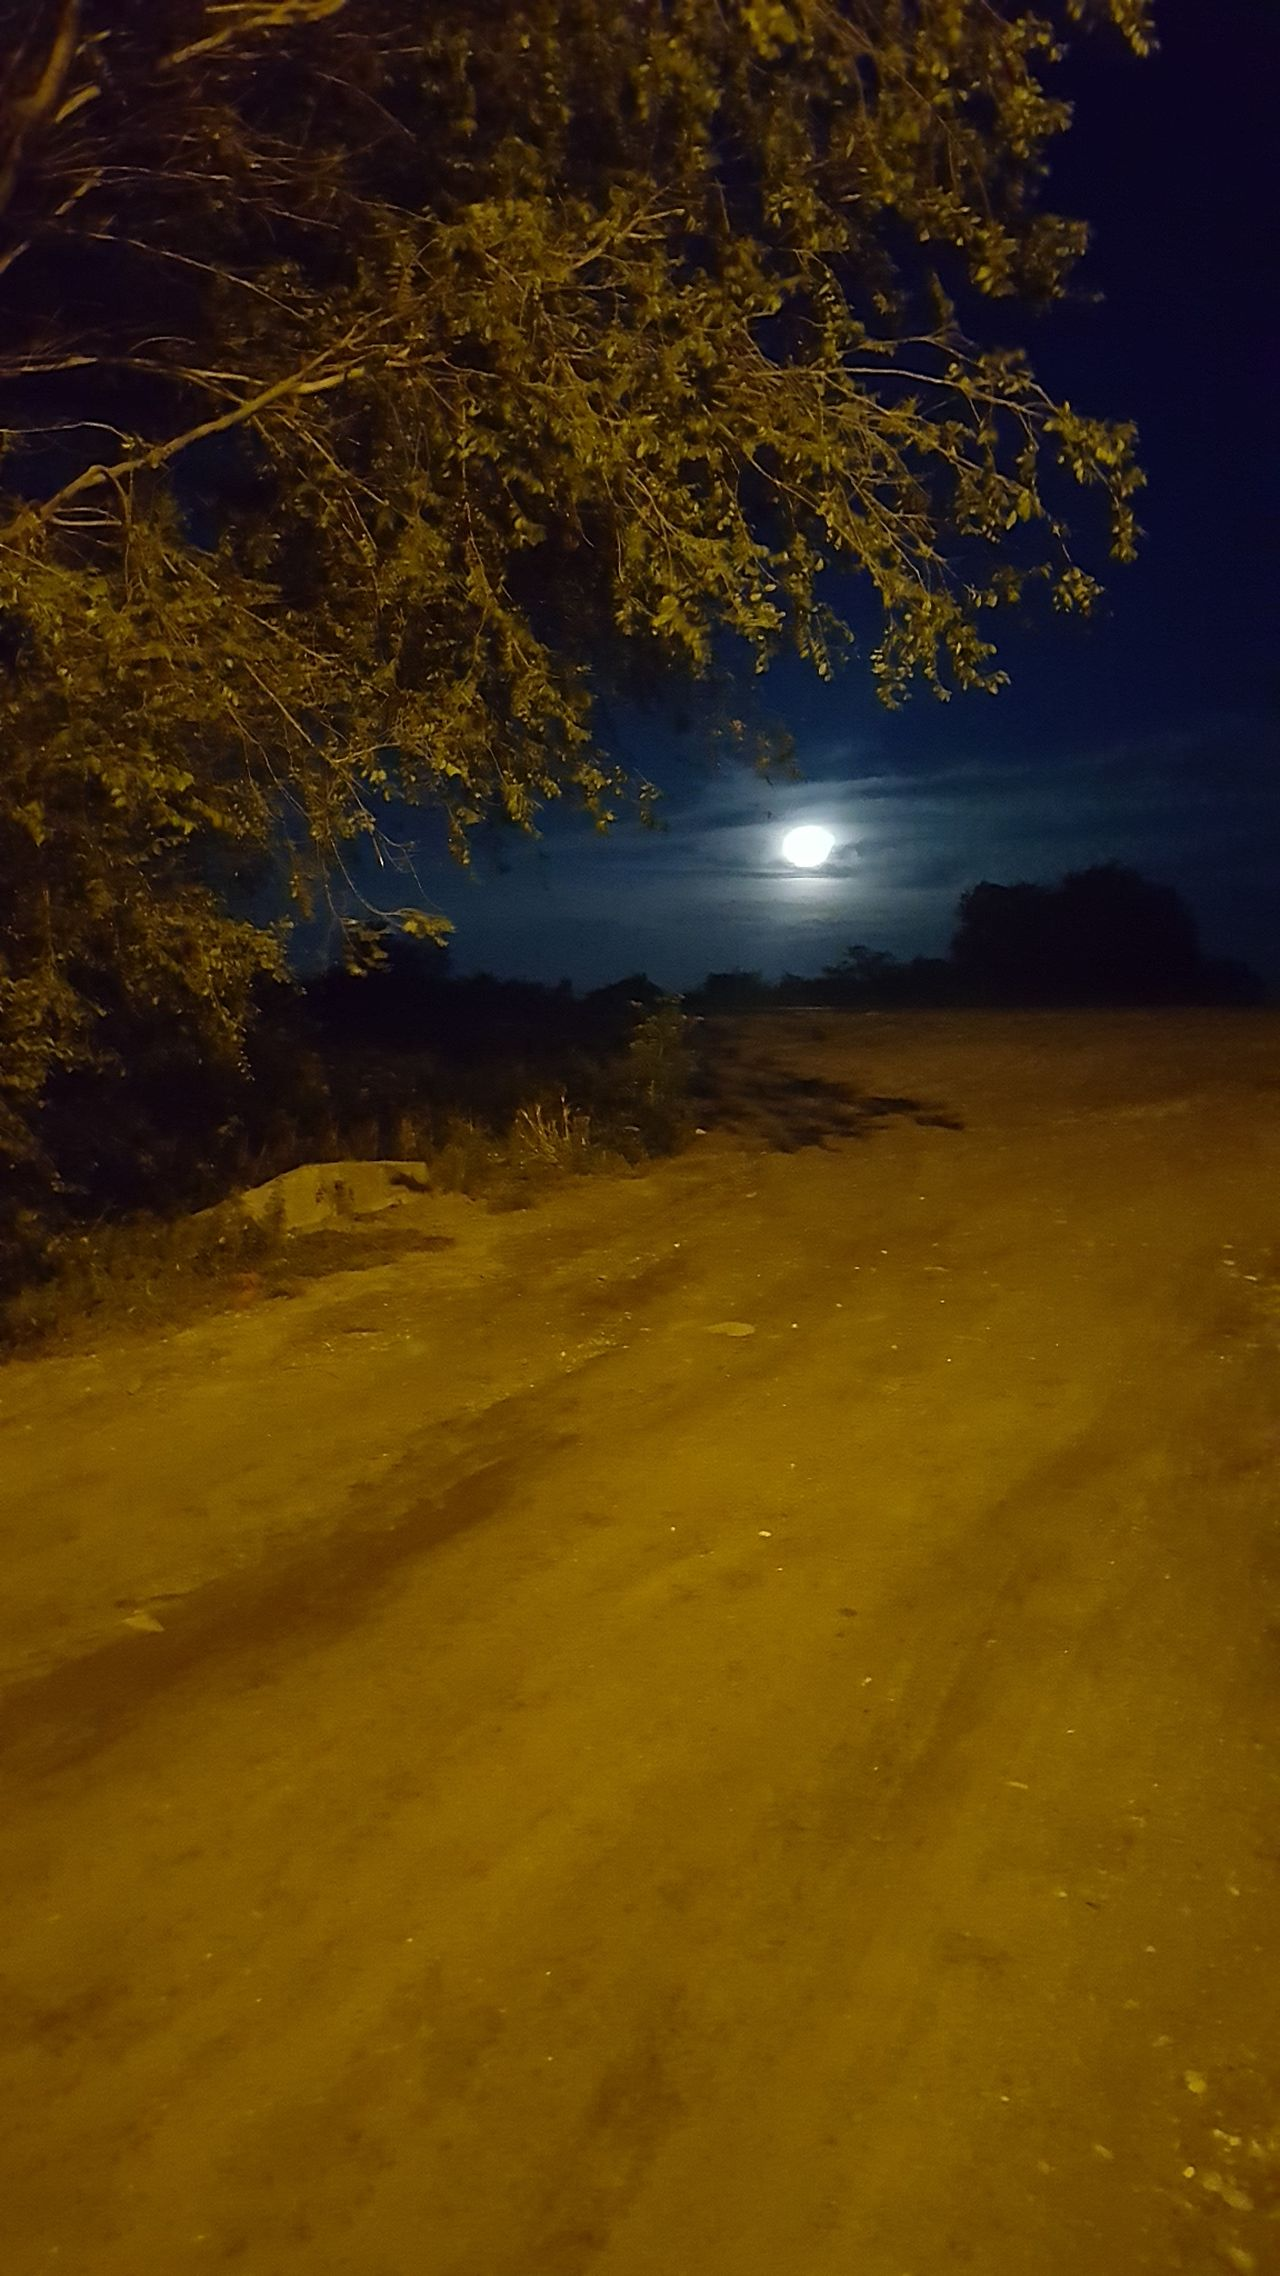 Luna Outdoors Camino Tree Night Illuminated Landscape caminando la noche Noche Nocturna